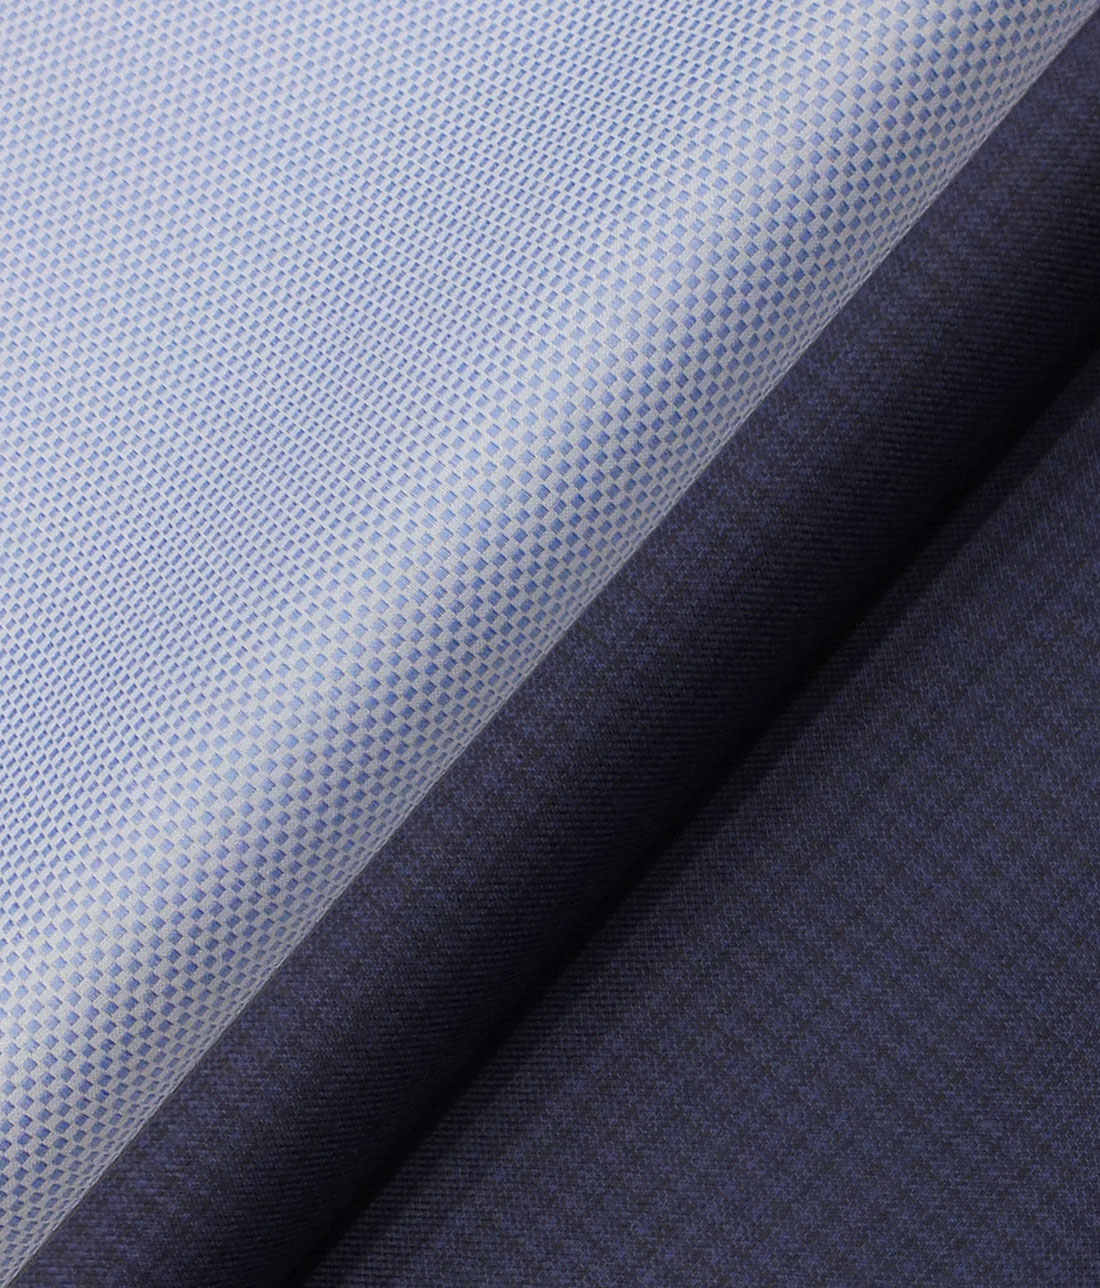 6424ce082f6 Raymond Dark Royal Blue Self Design Trouser Fabric With Exquisite Light  Blue Structured Shirt Fabric (Unstitched)